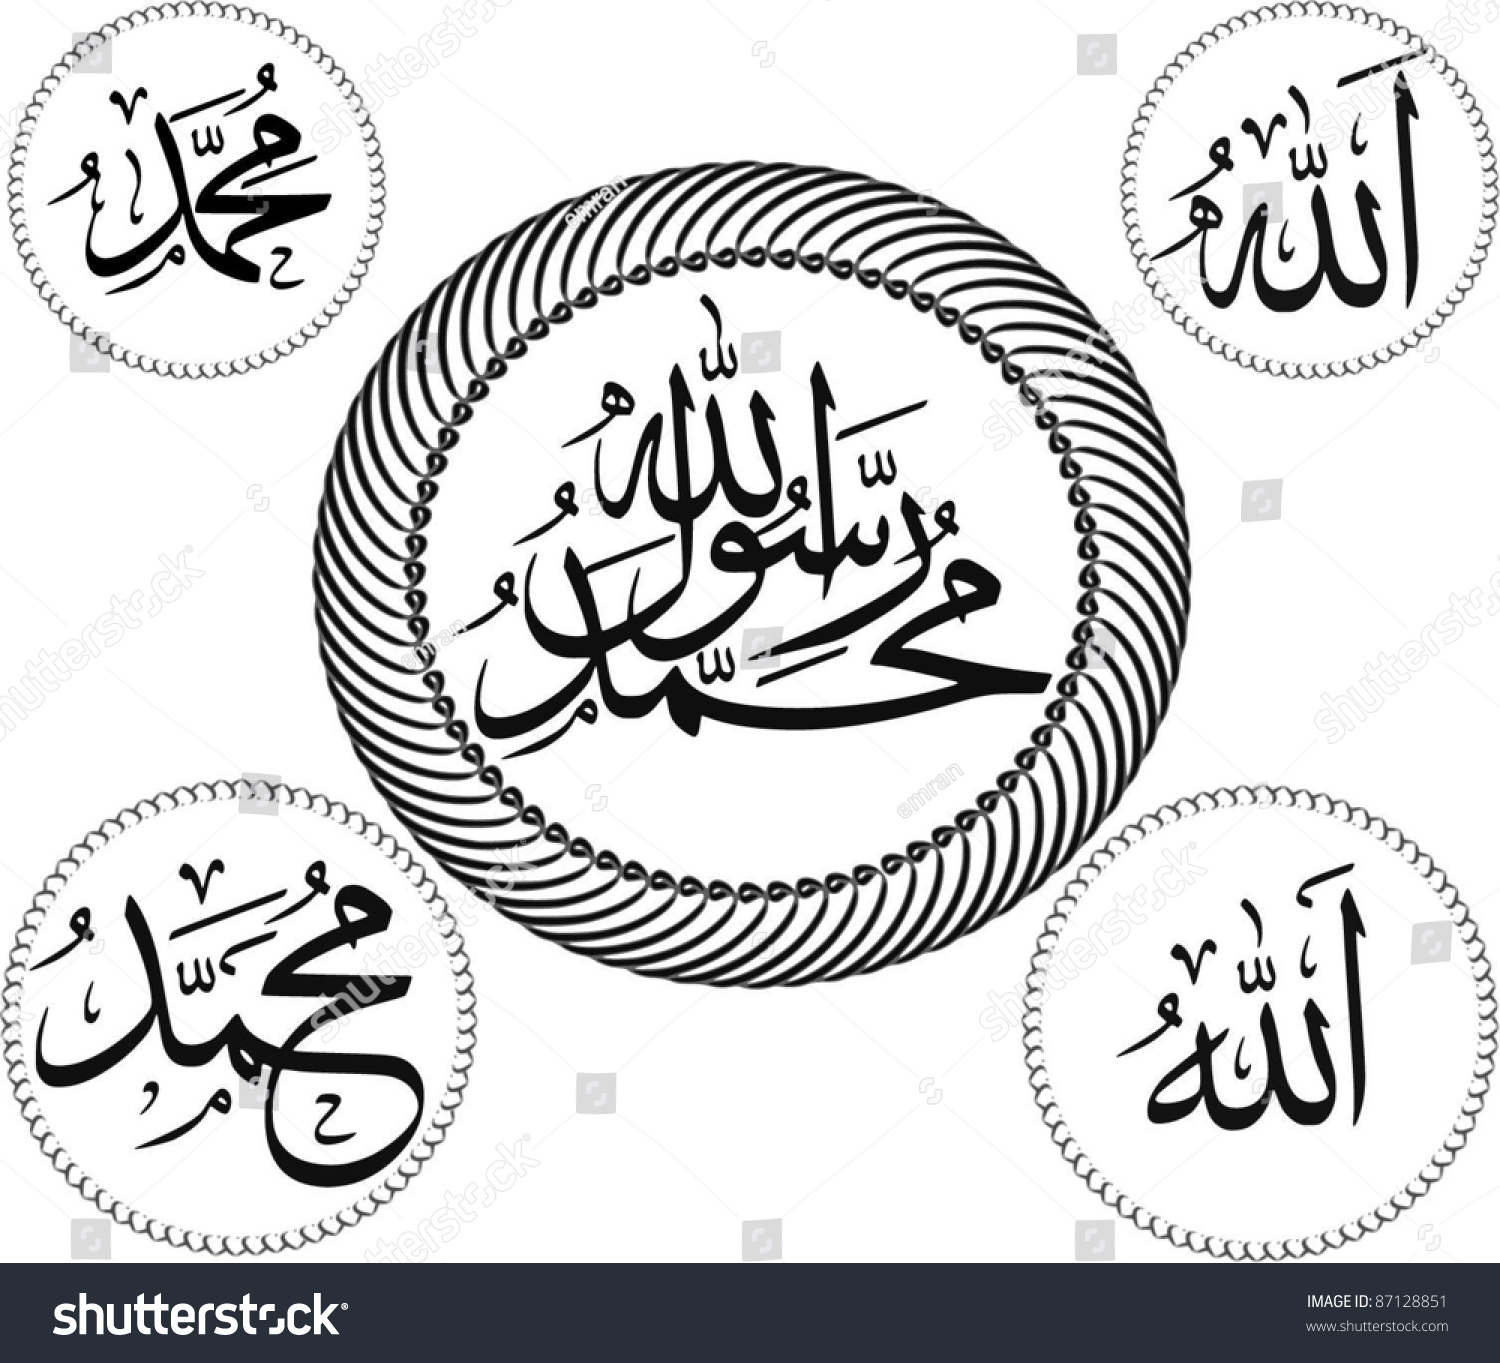 Arabic calligraphy vector transliterated muhammad rasulullah stock arabic calligraphy vector transliterated as muhammad rasulullah which mean muhamad is the messenger buycottarizona